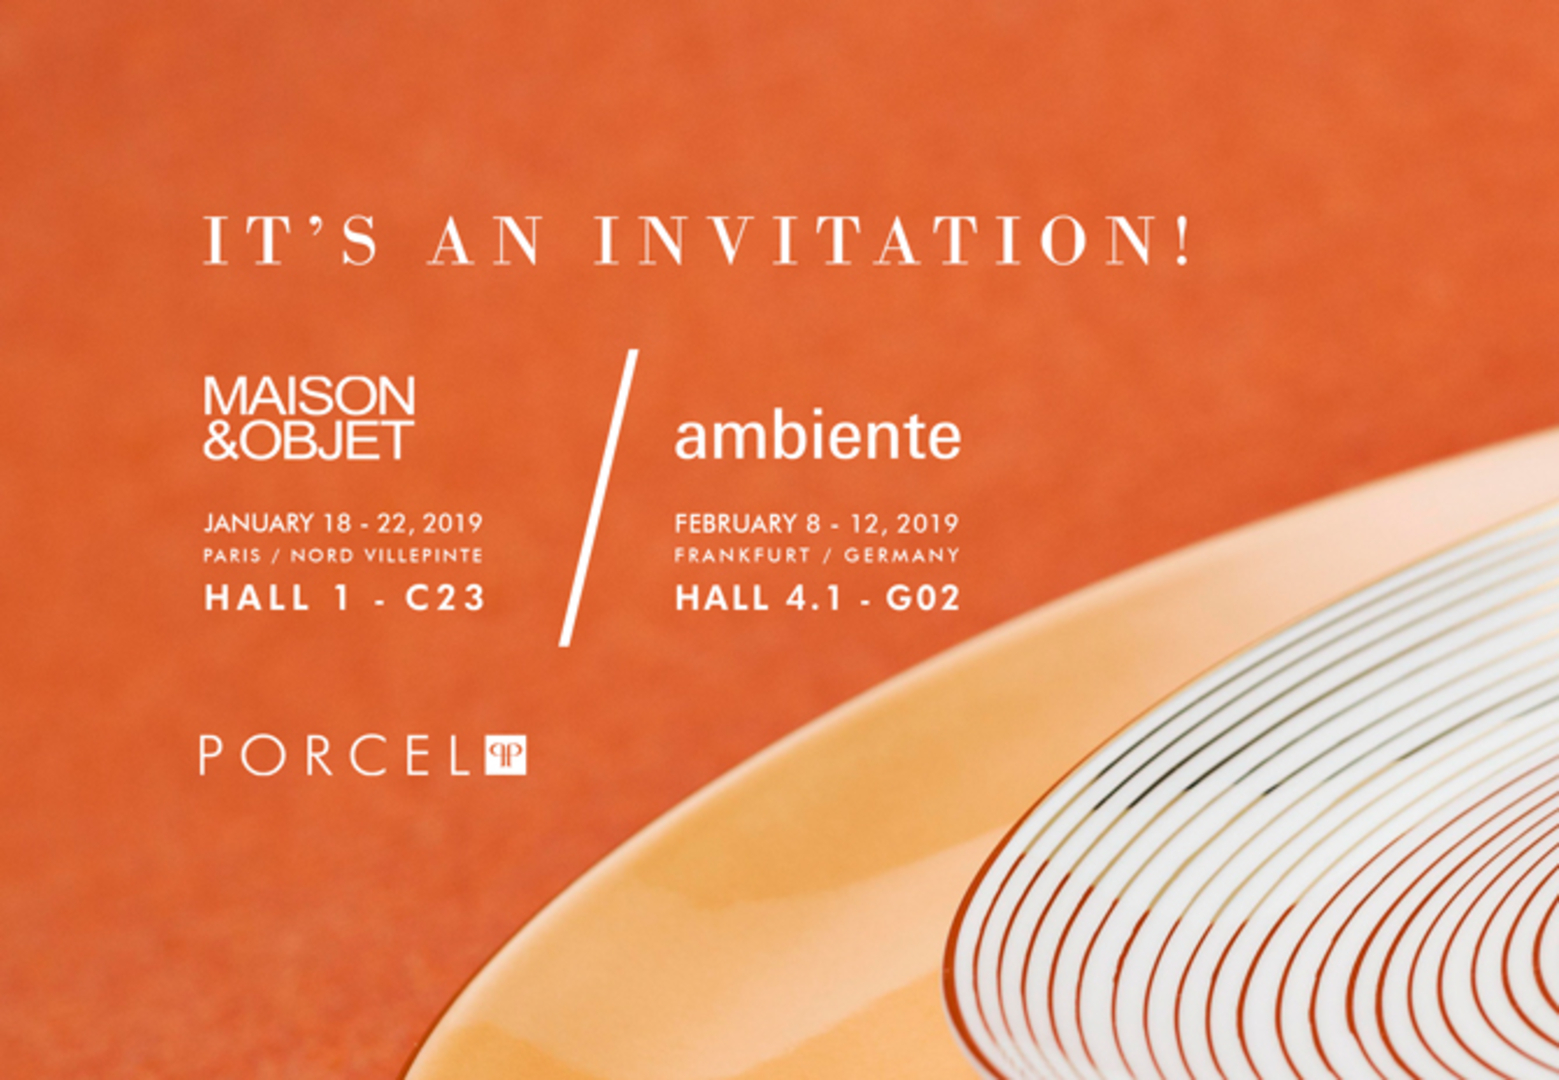 Maison&Objet and Ambiente 1